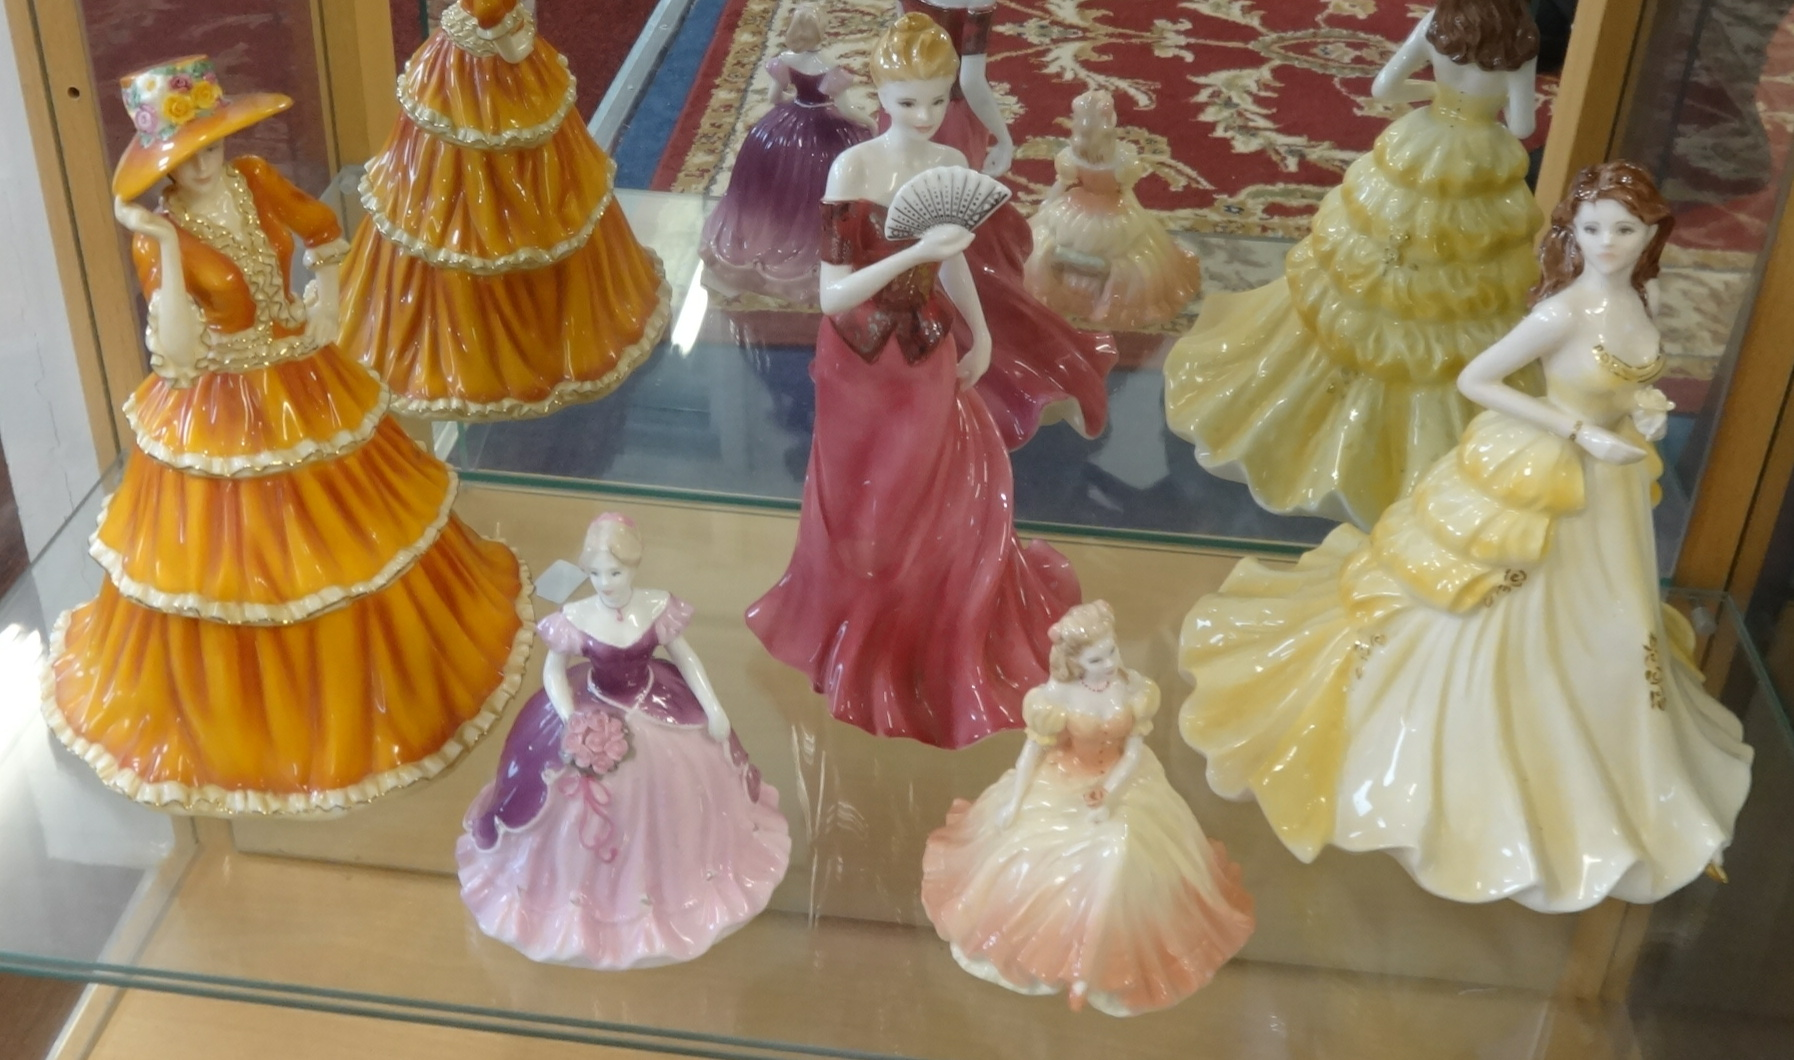 Lot 042 - A collection of 19 porcelain figurines including Coalport, Doulton Pretty Ladies series and